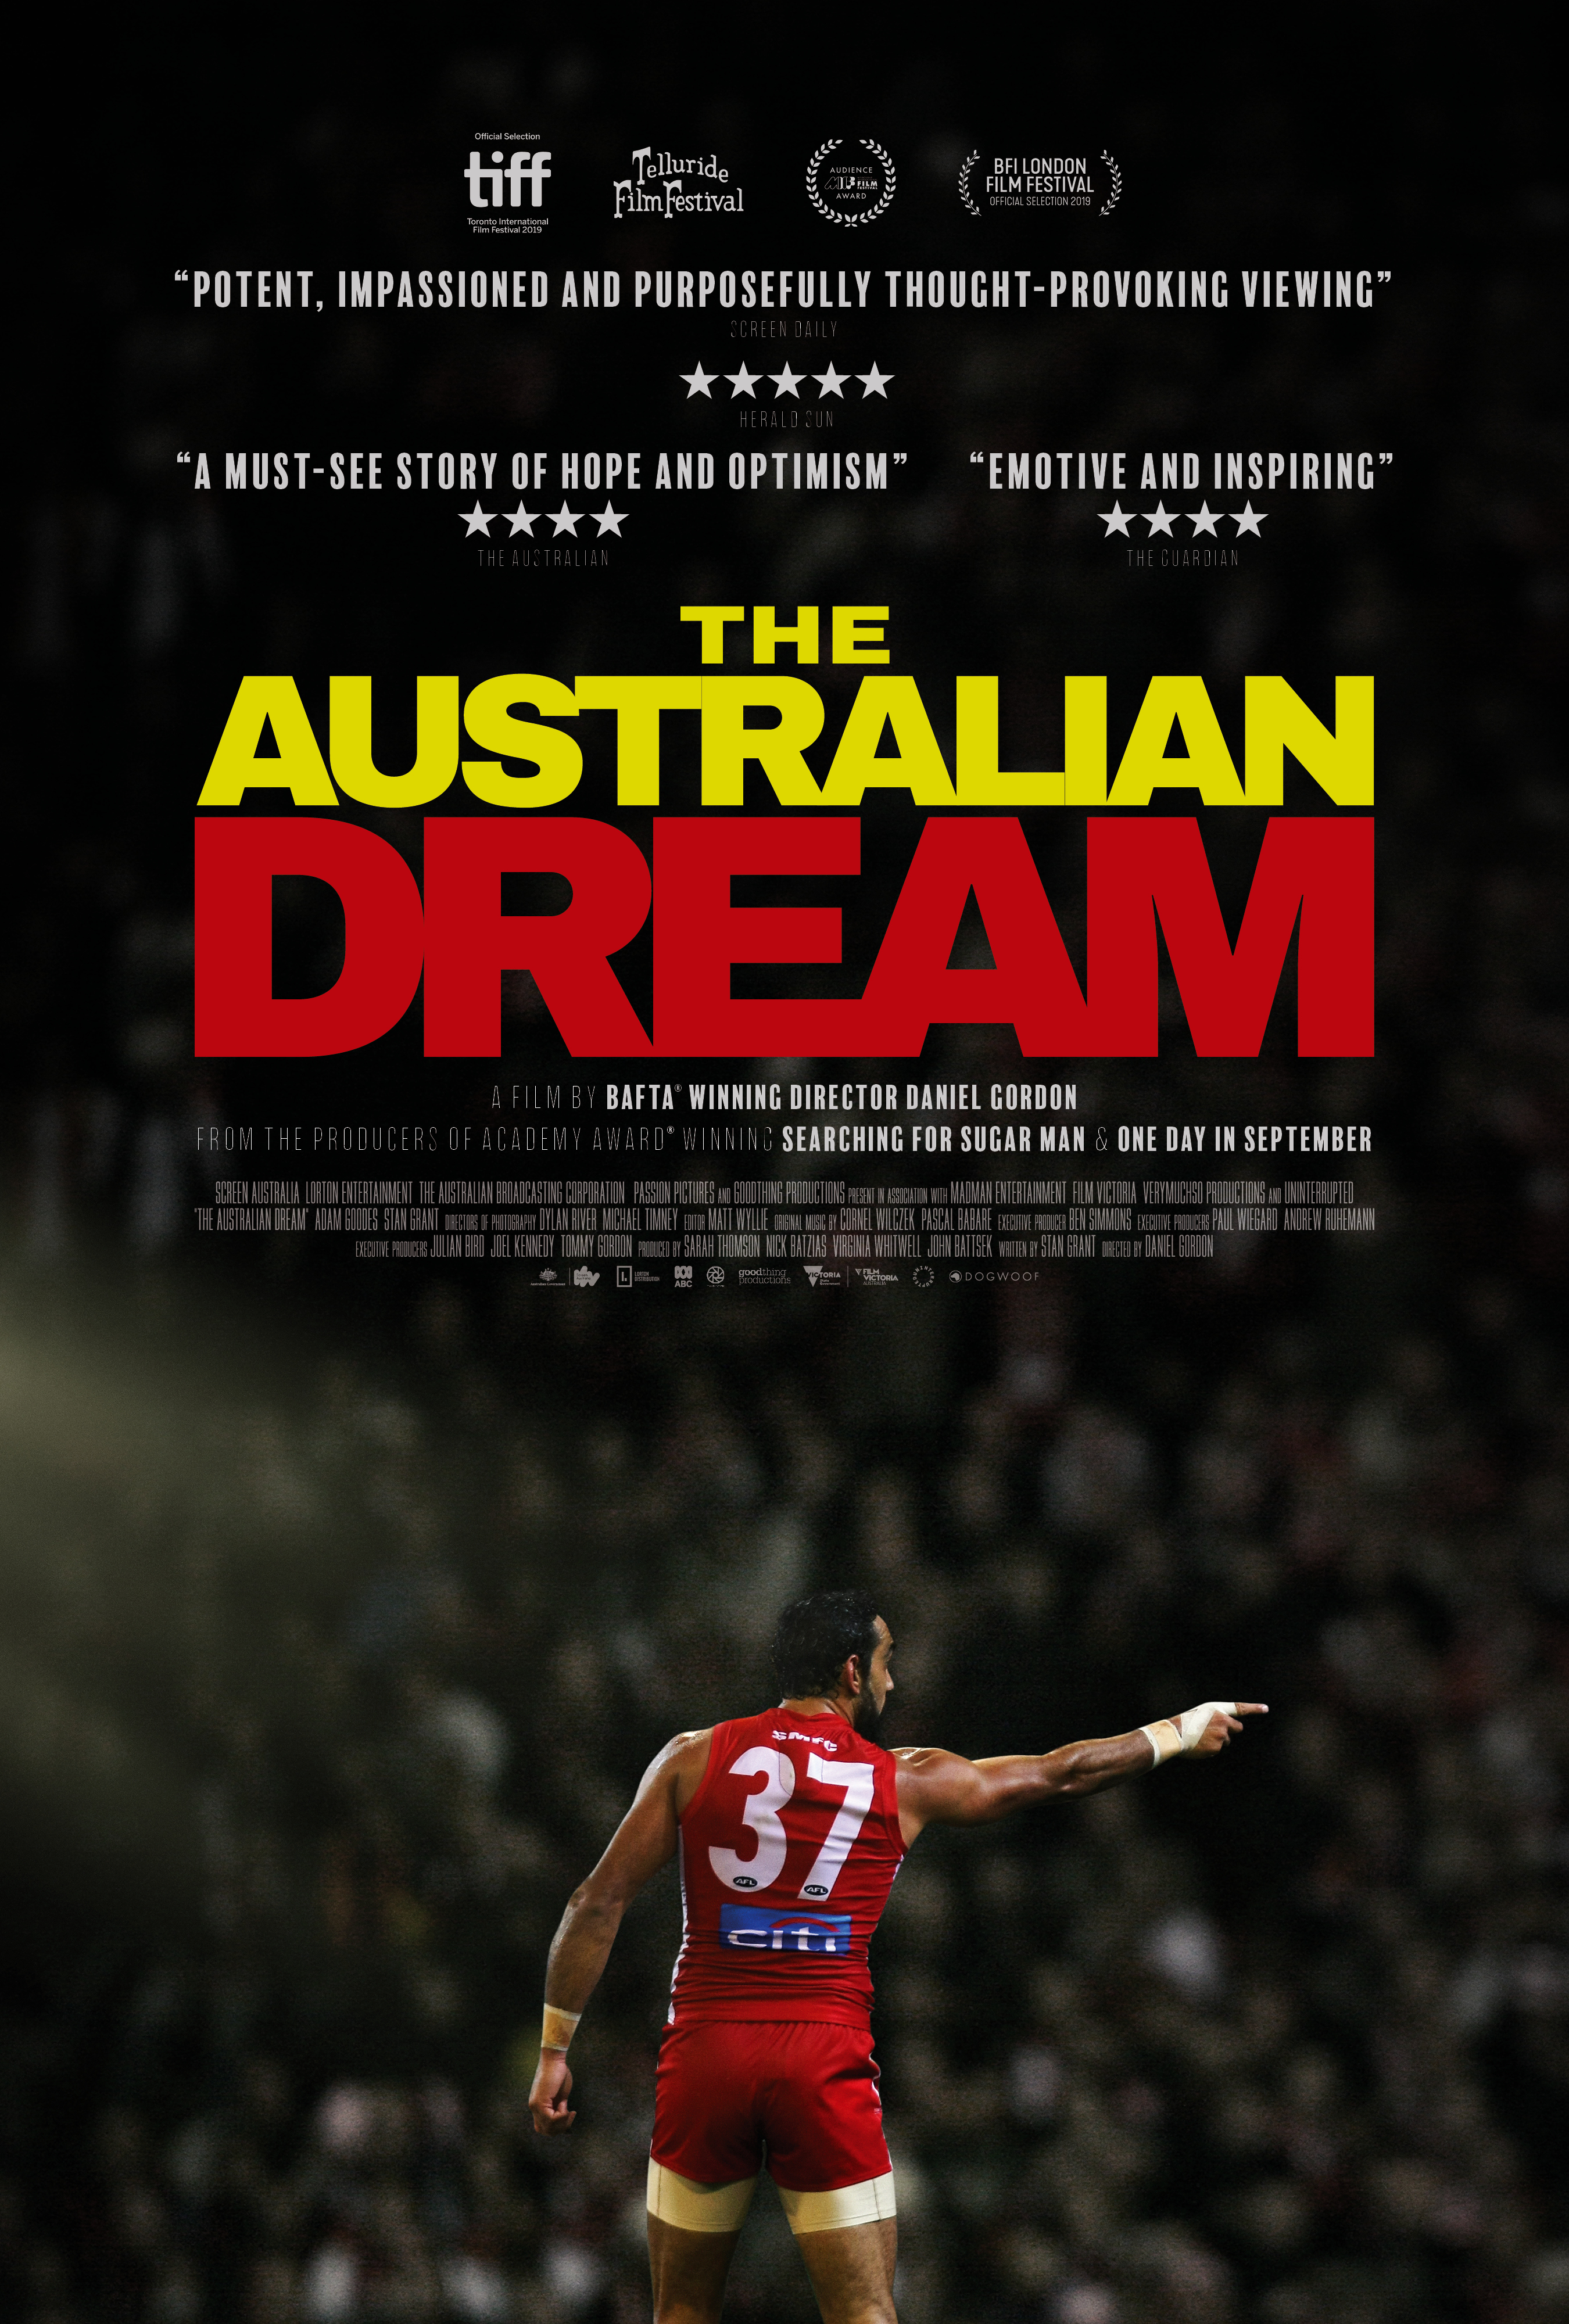 The Australian Dream Image